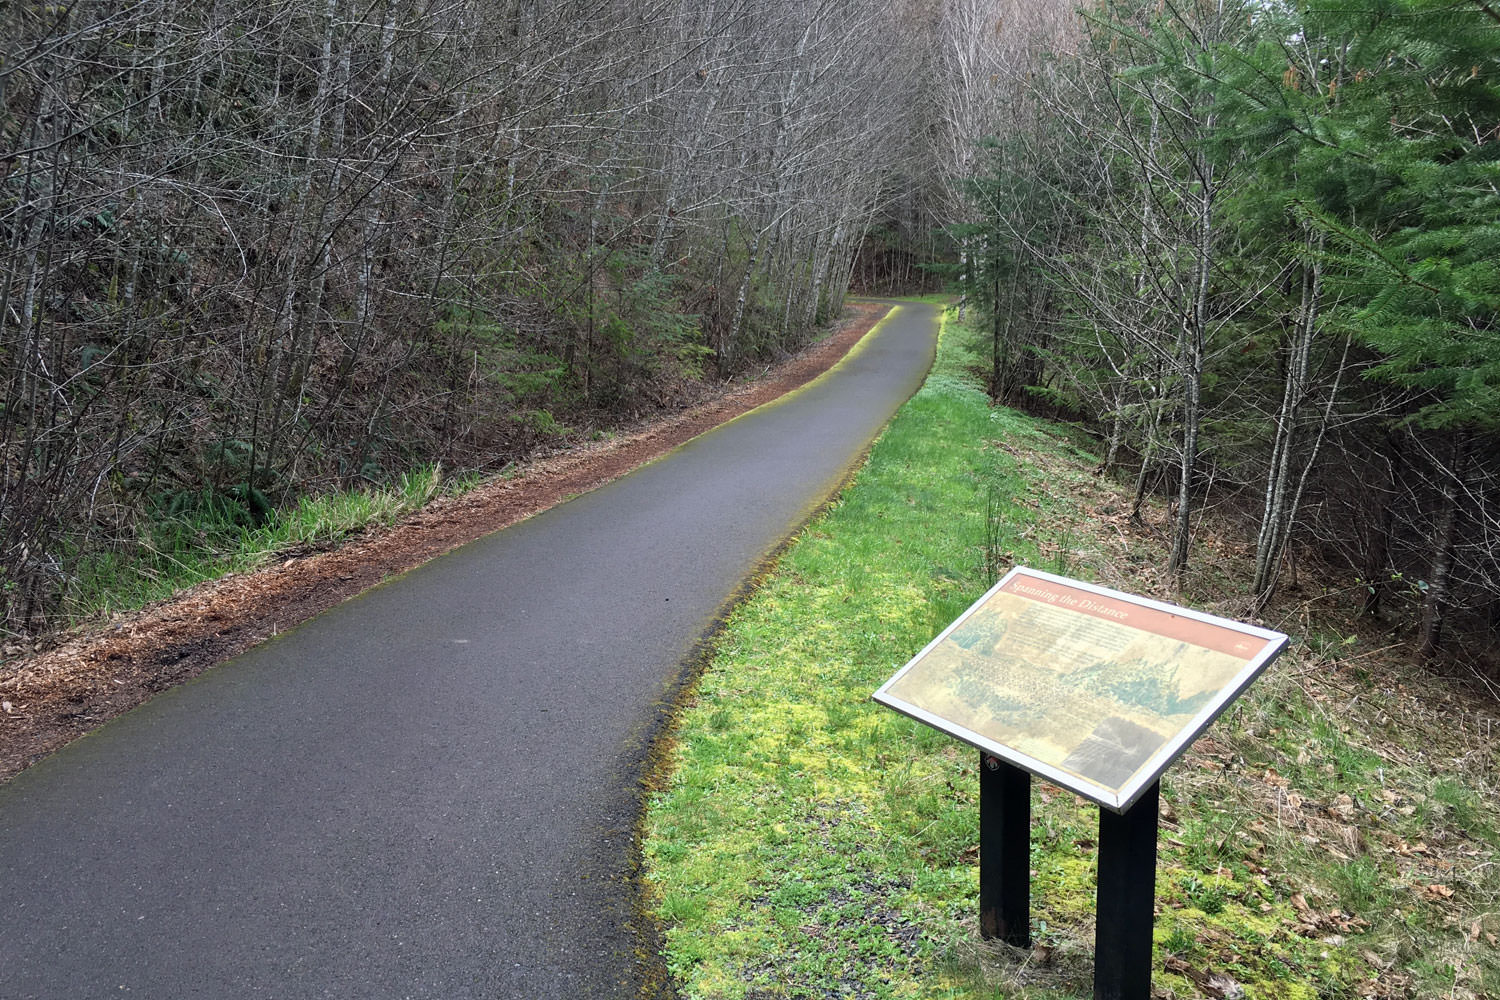 A paved bike path winds through forest trees.